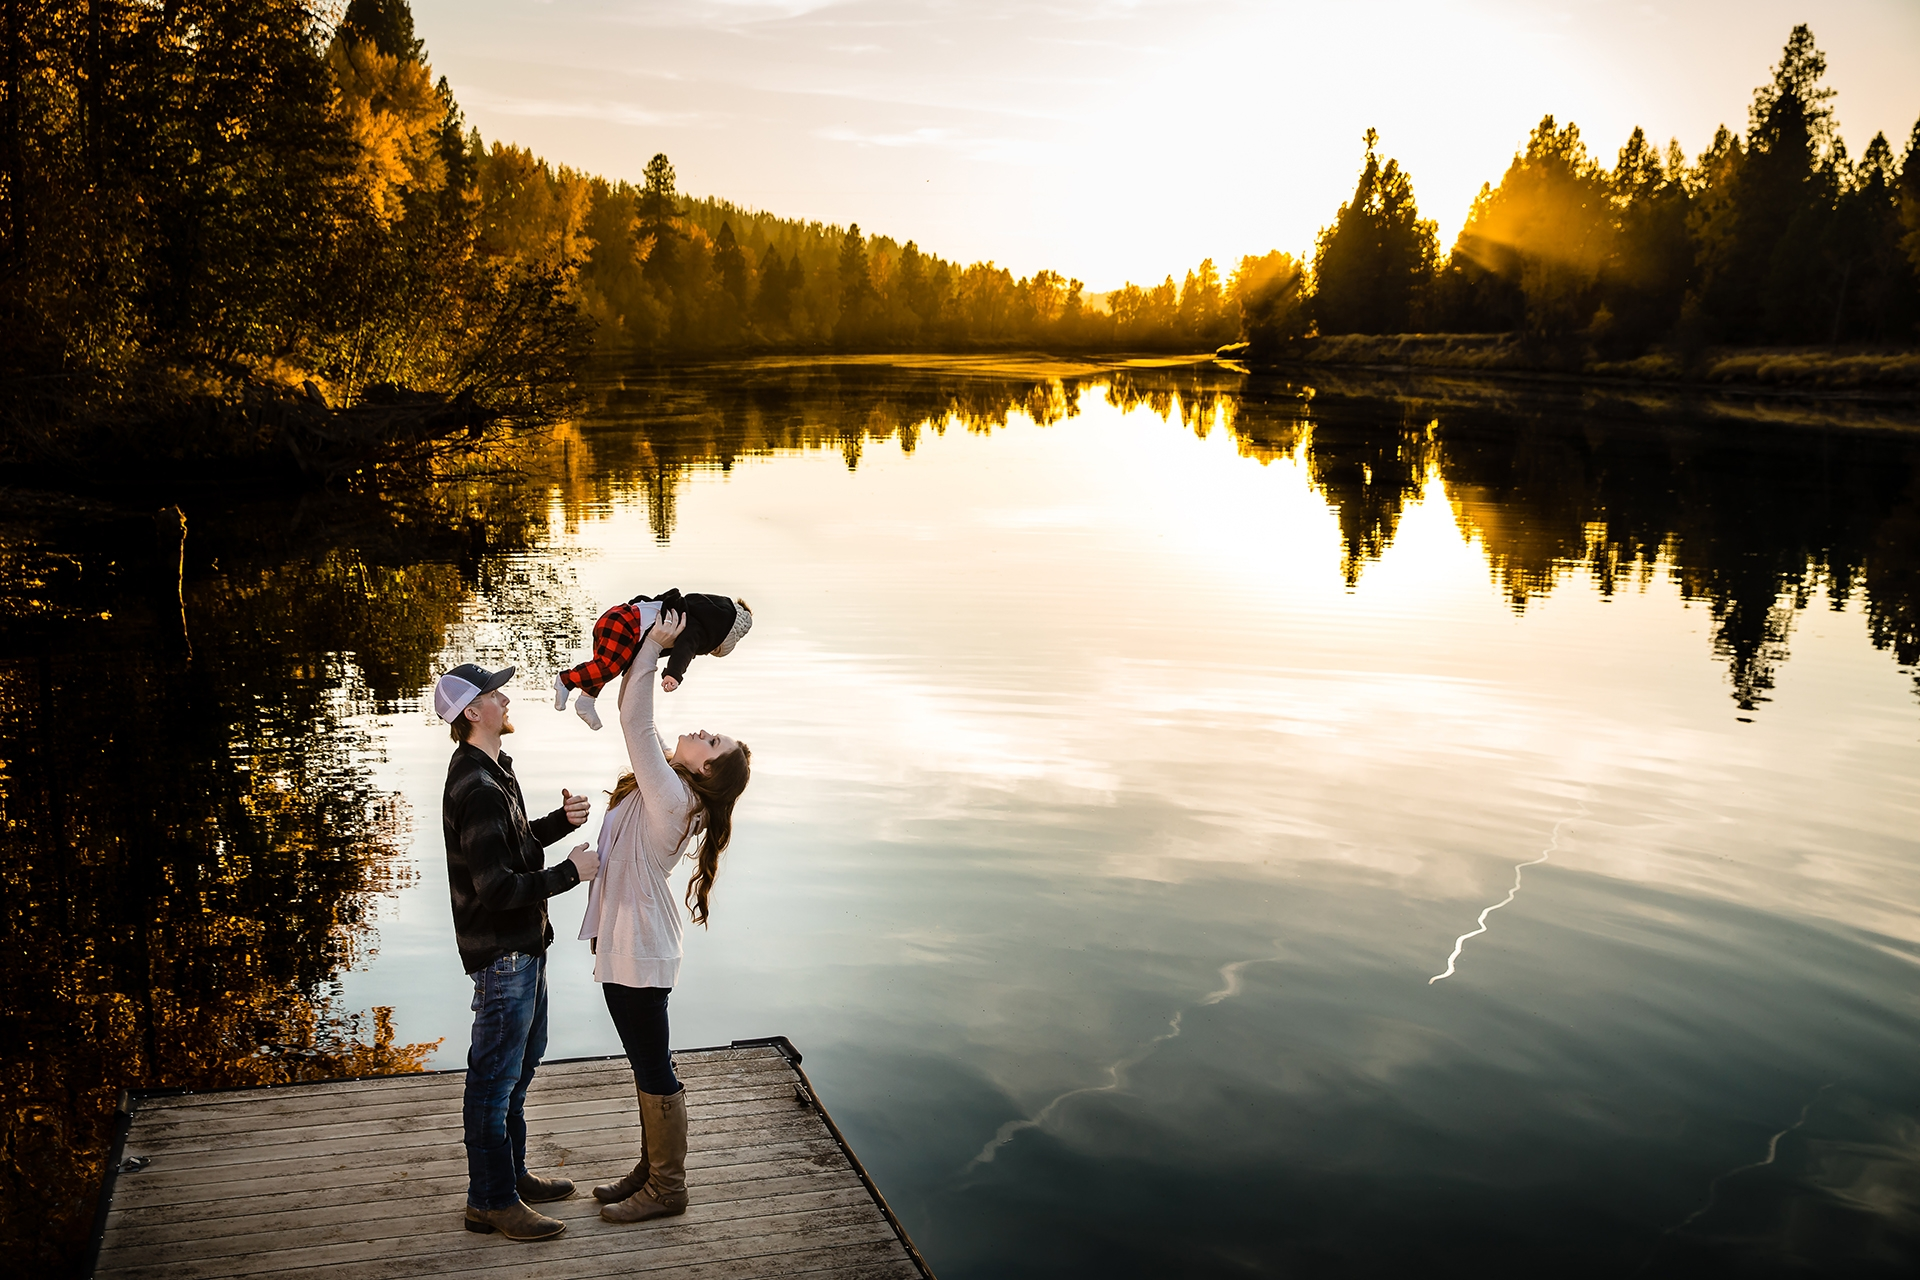 Wedding Photographer Jerome Pollos of Idaho, United States